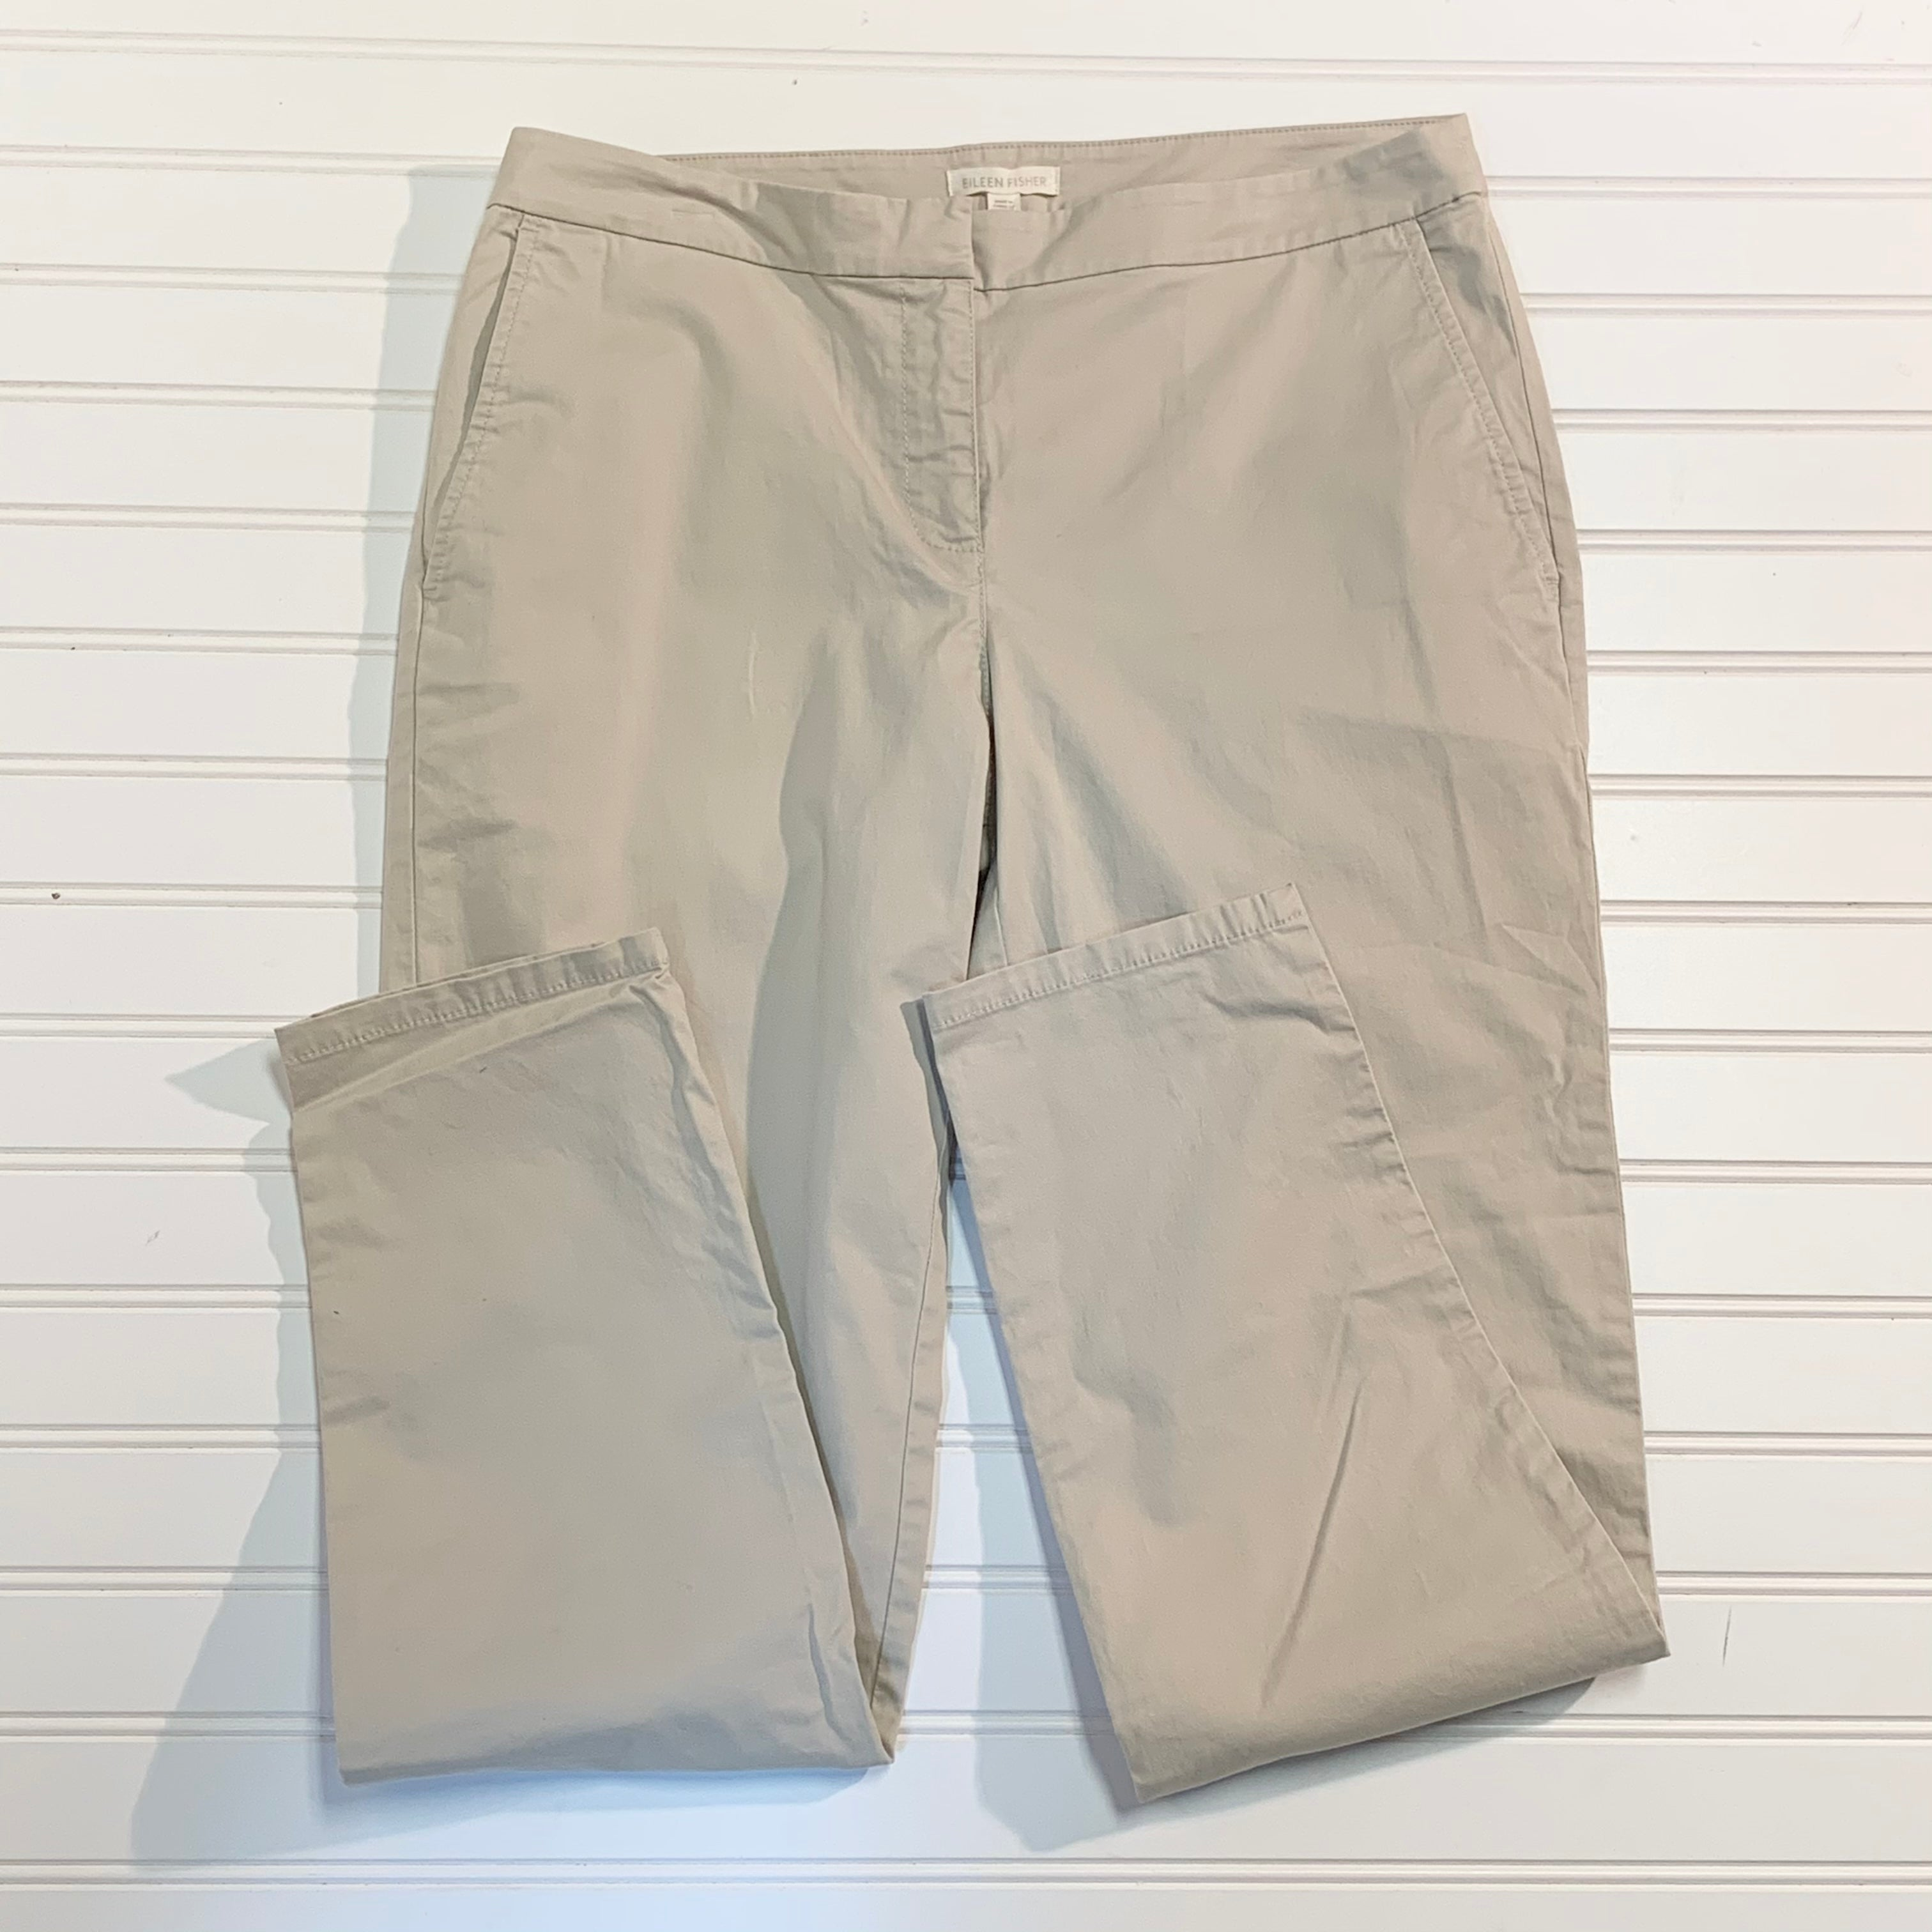 Primary Photo - BRAND: EILEEN FISHER <BR>STYLE: PANTS <BR>COLOR: KHAKI <BR>SIZE: 8 <BR>OTHER INFO: NEW! COTTON TENCEL <BR>SKU: 239-23911-71753